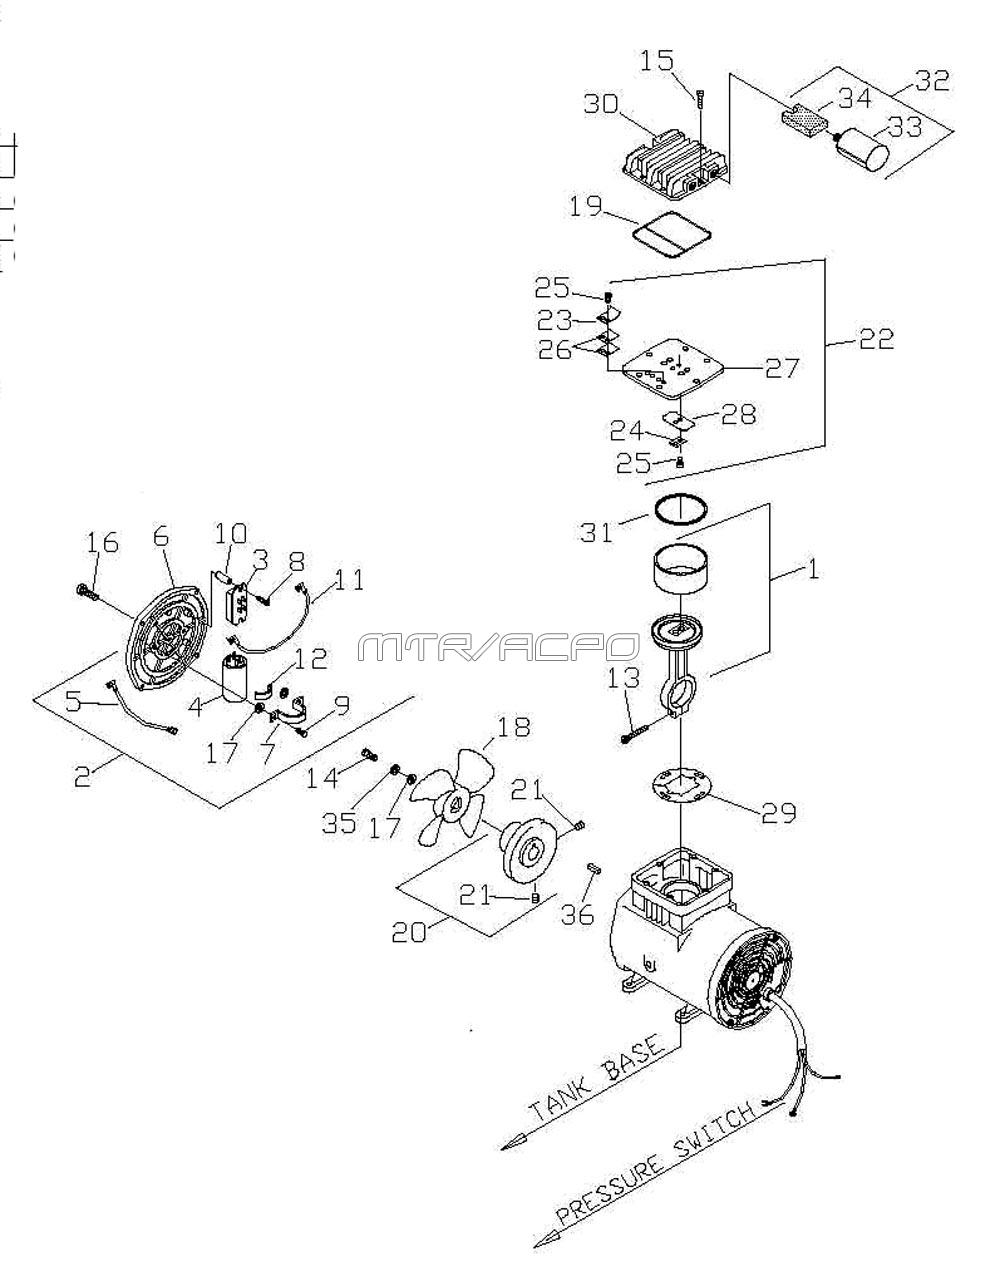 Thomas Compressor Wiring Diagram -2001 Tahoe Stereo Wiring Diagram |  Begeboy Wiring Diagram SourceBegeboy Wiring Diagram Source